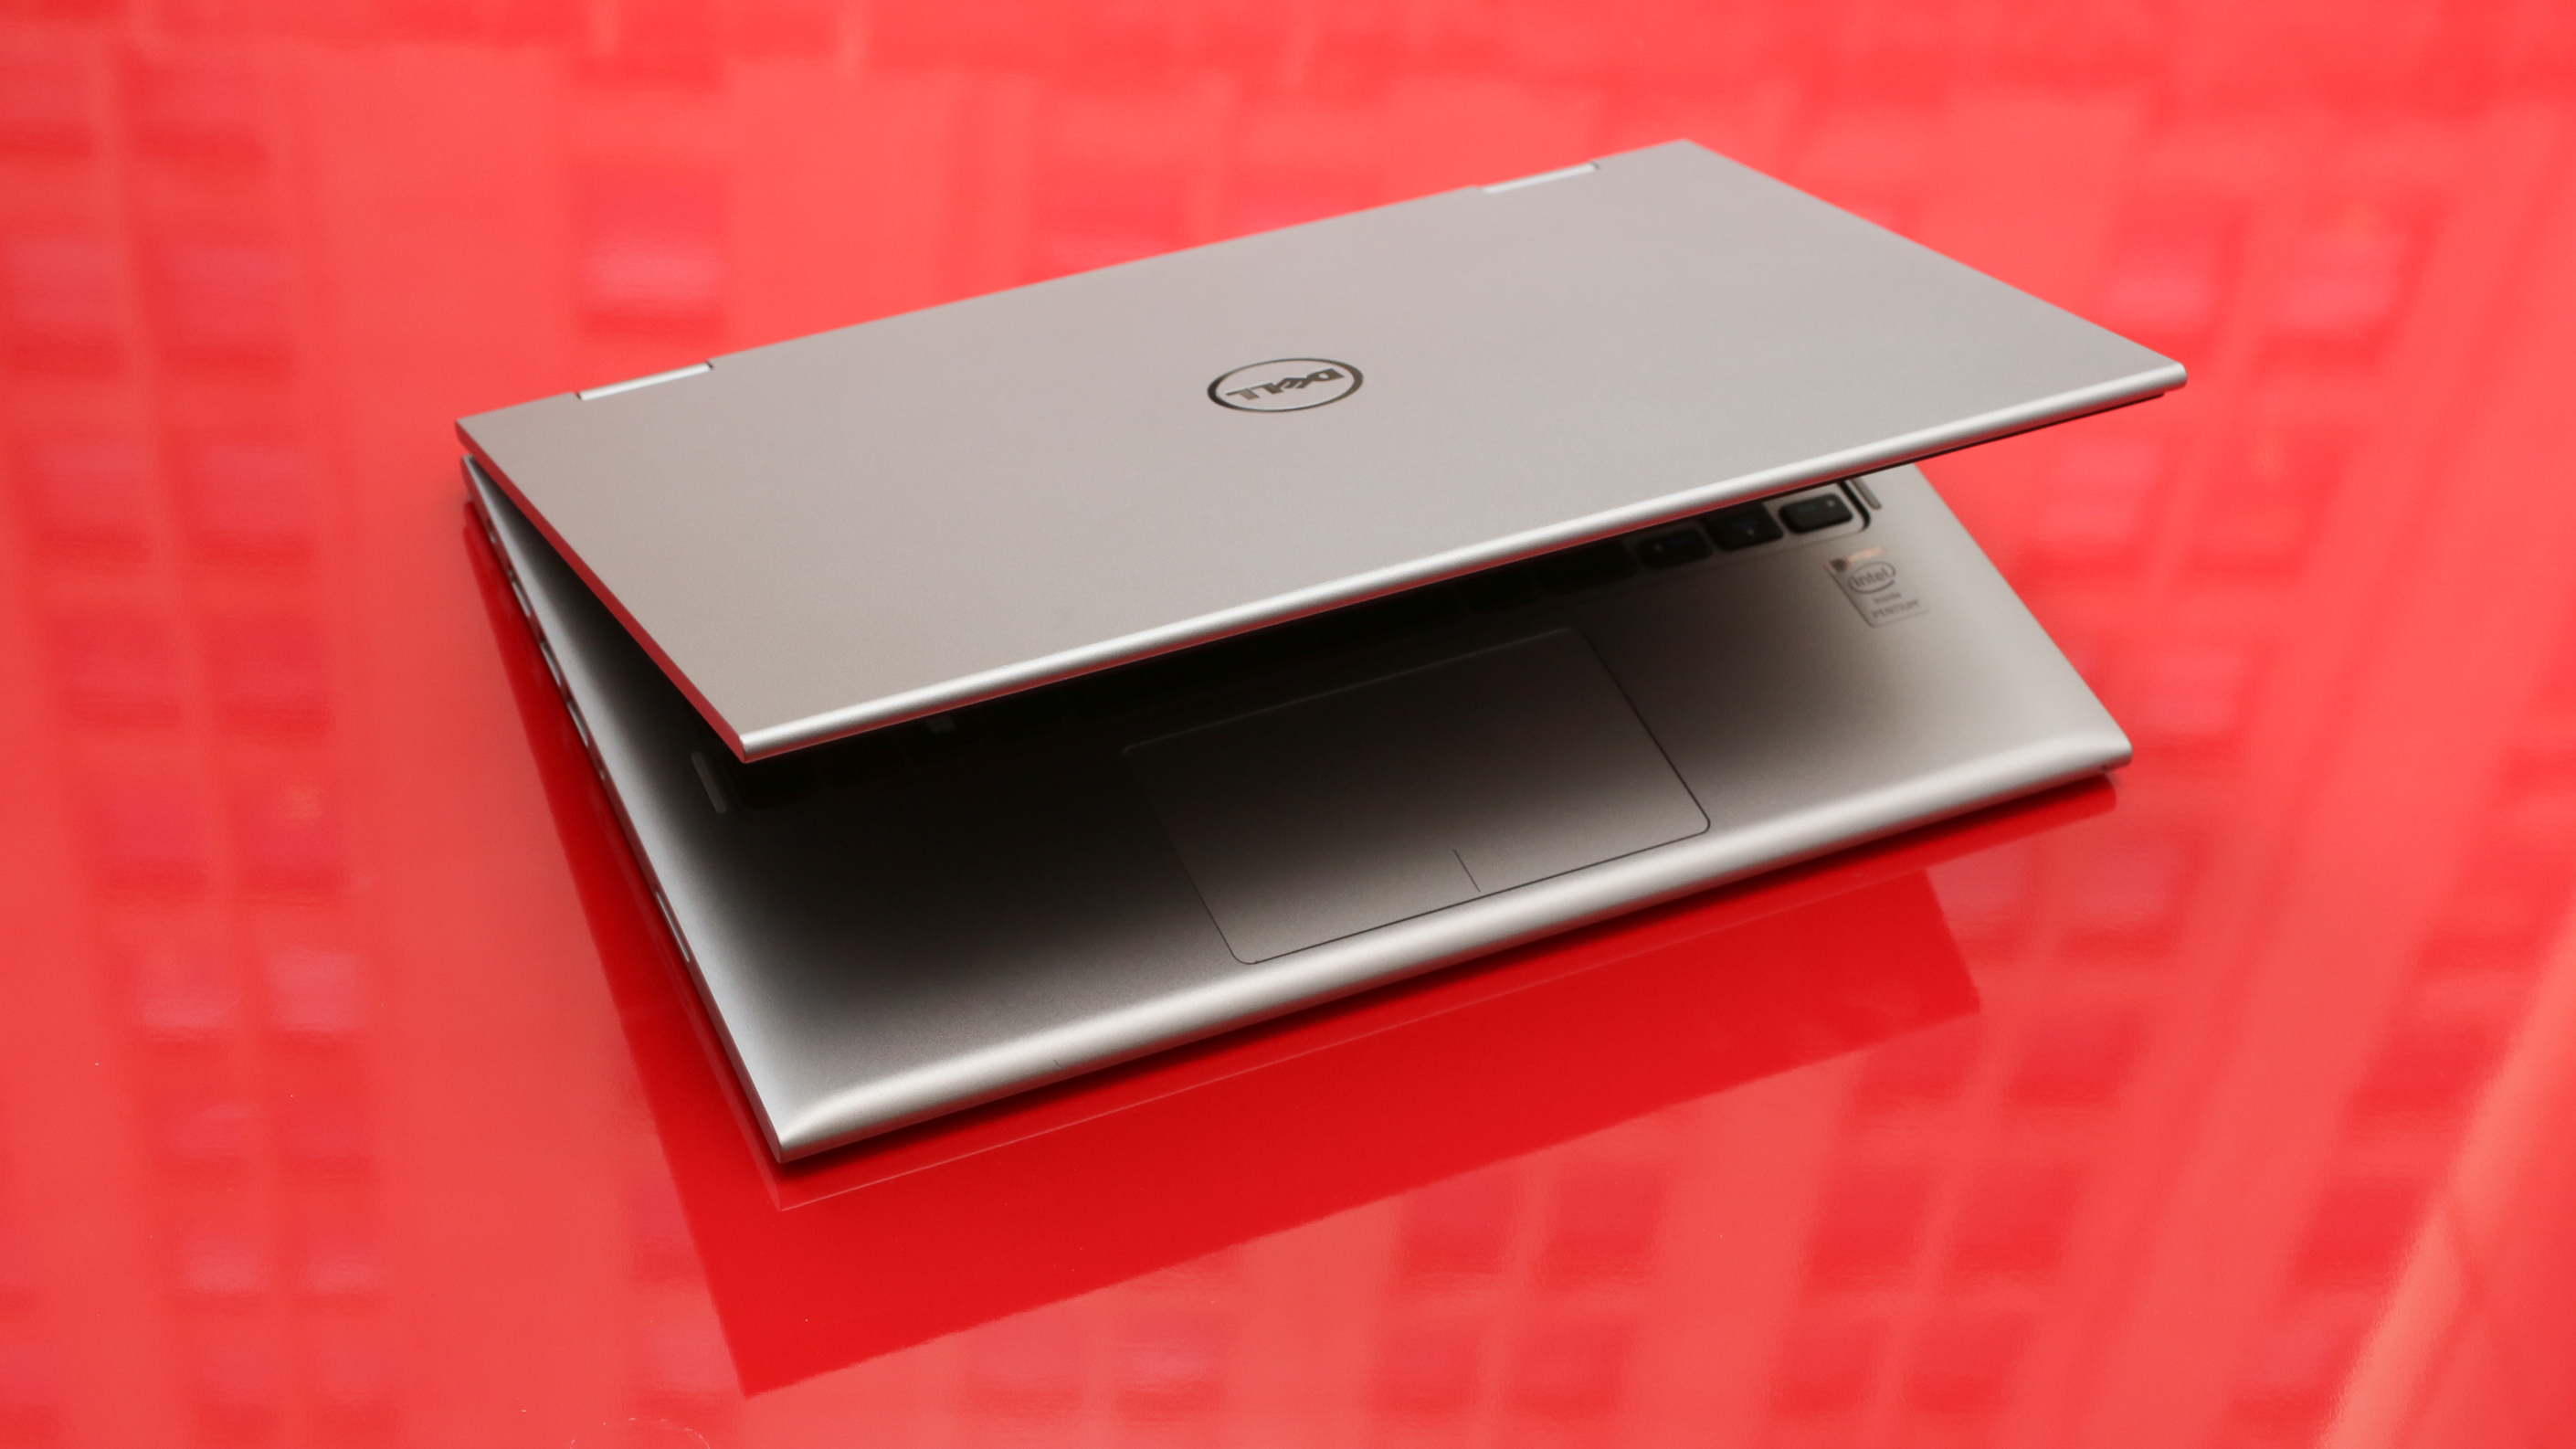 dell-inspiron-3000-11-product-photos06.jpg